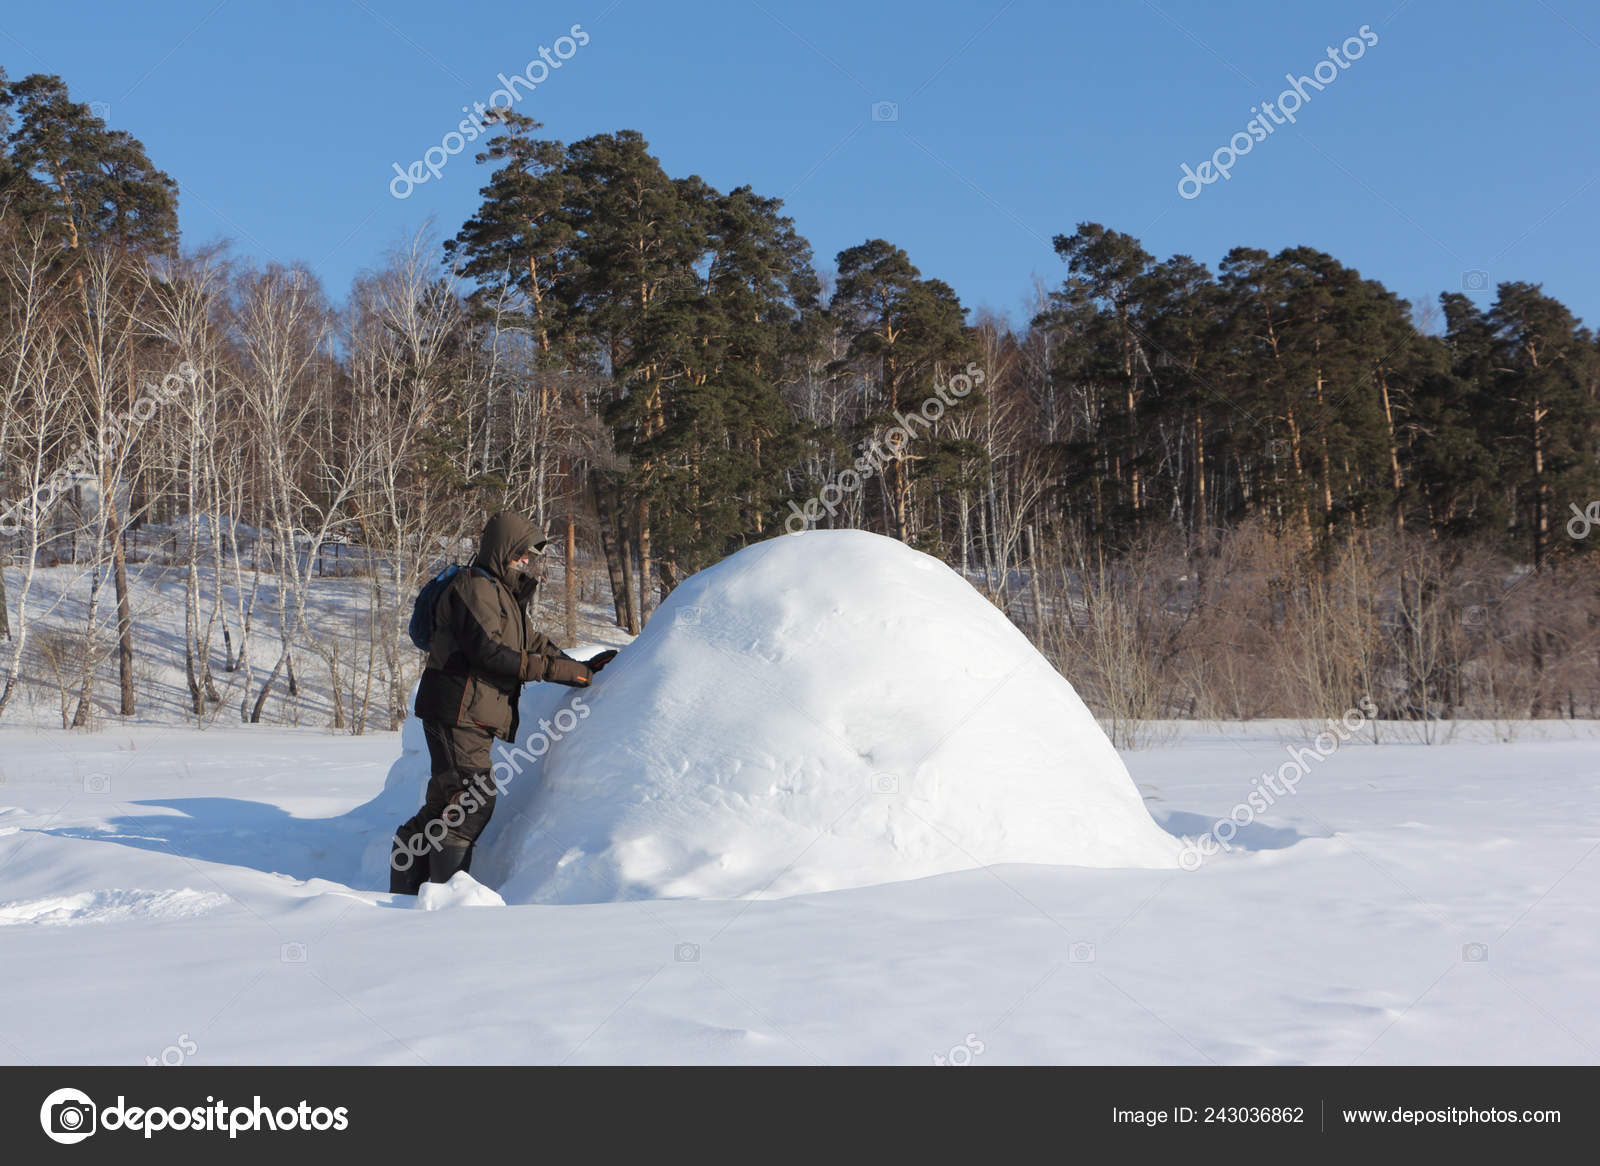 Man Warm Clothes Building Igloo Snowy Glade Winter Siberia